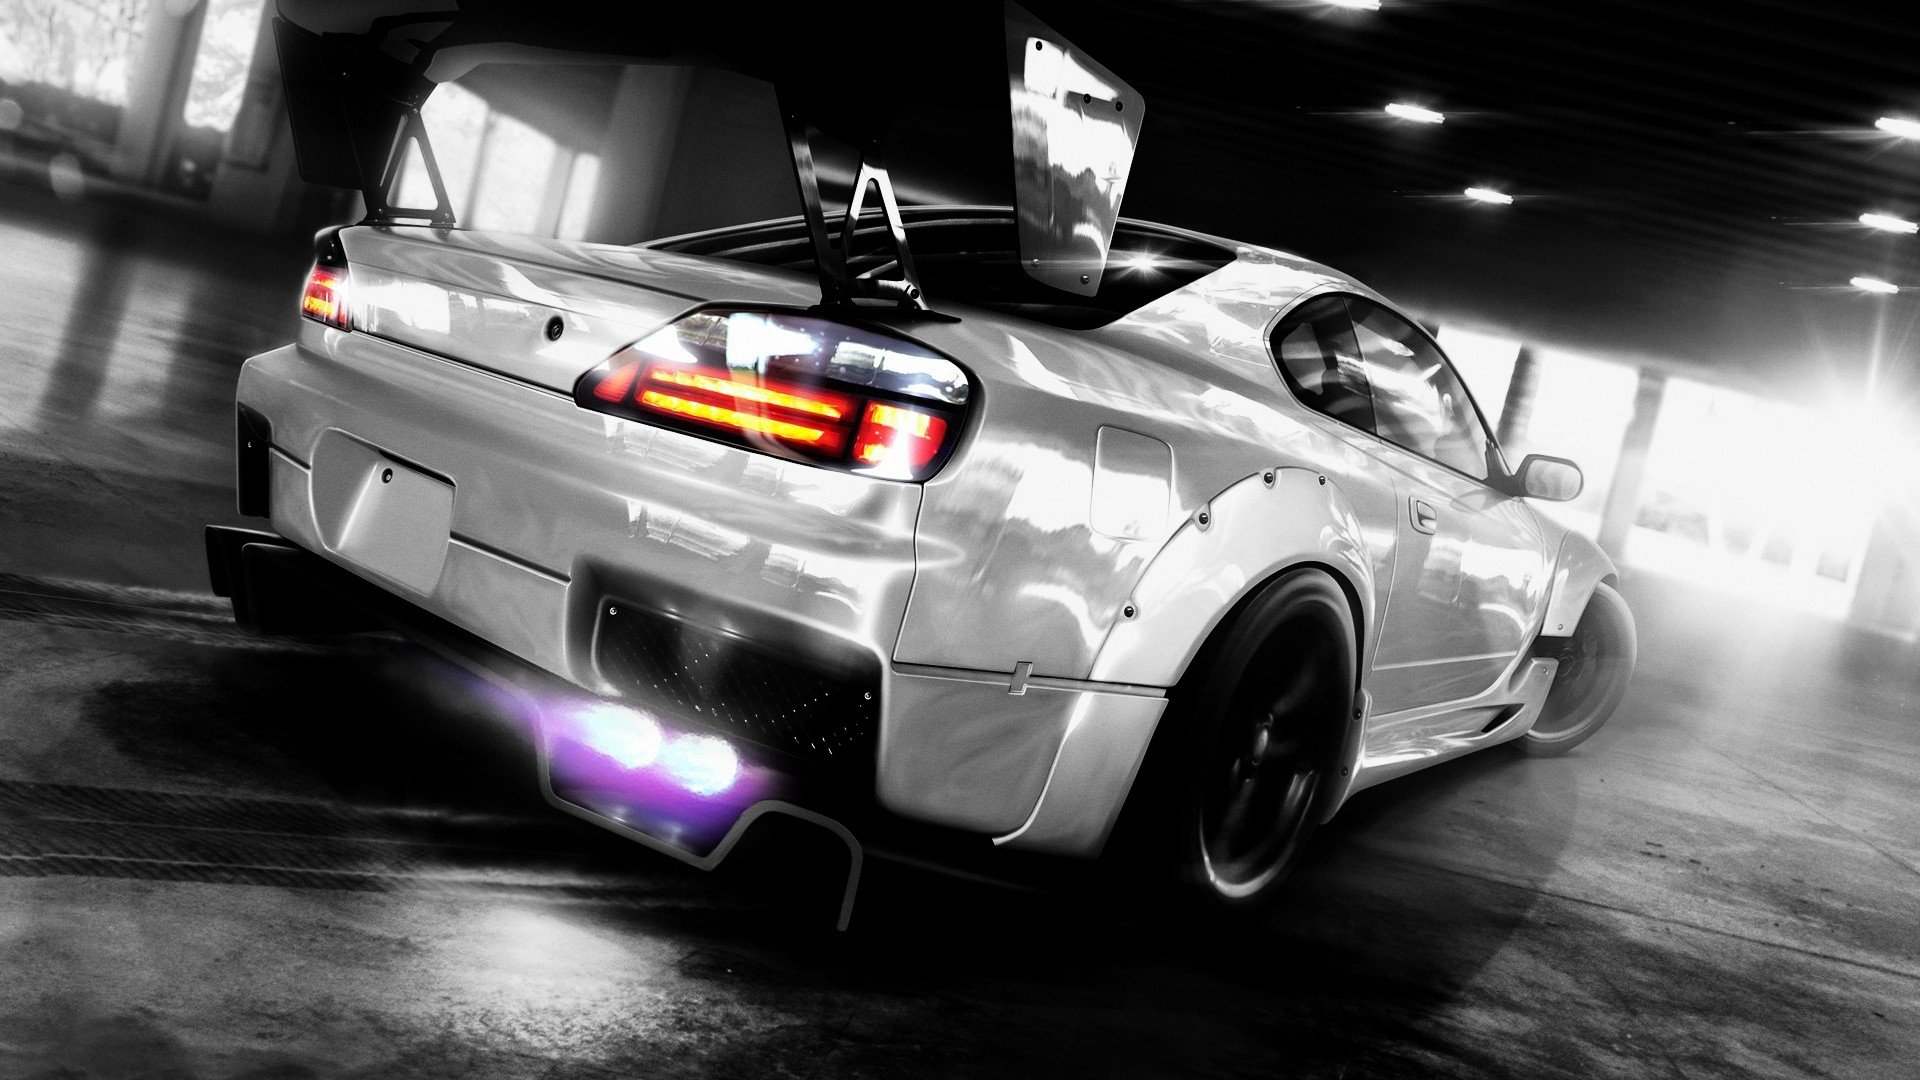 s15 wallpaper - photo #20